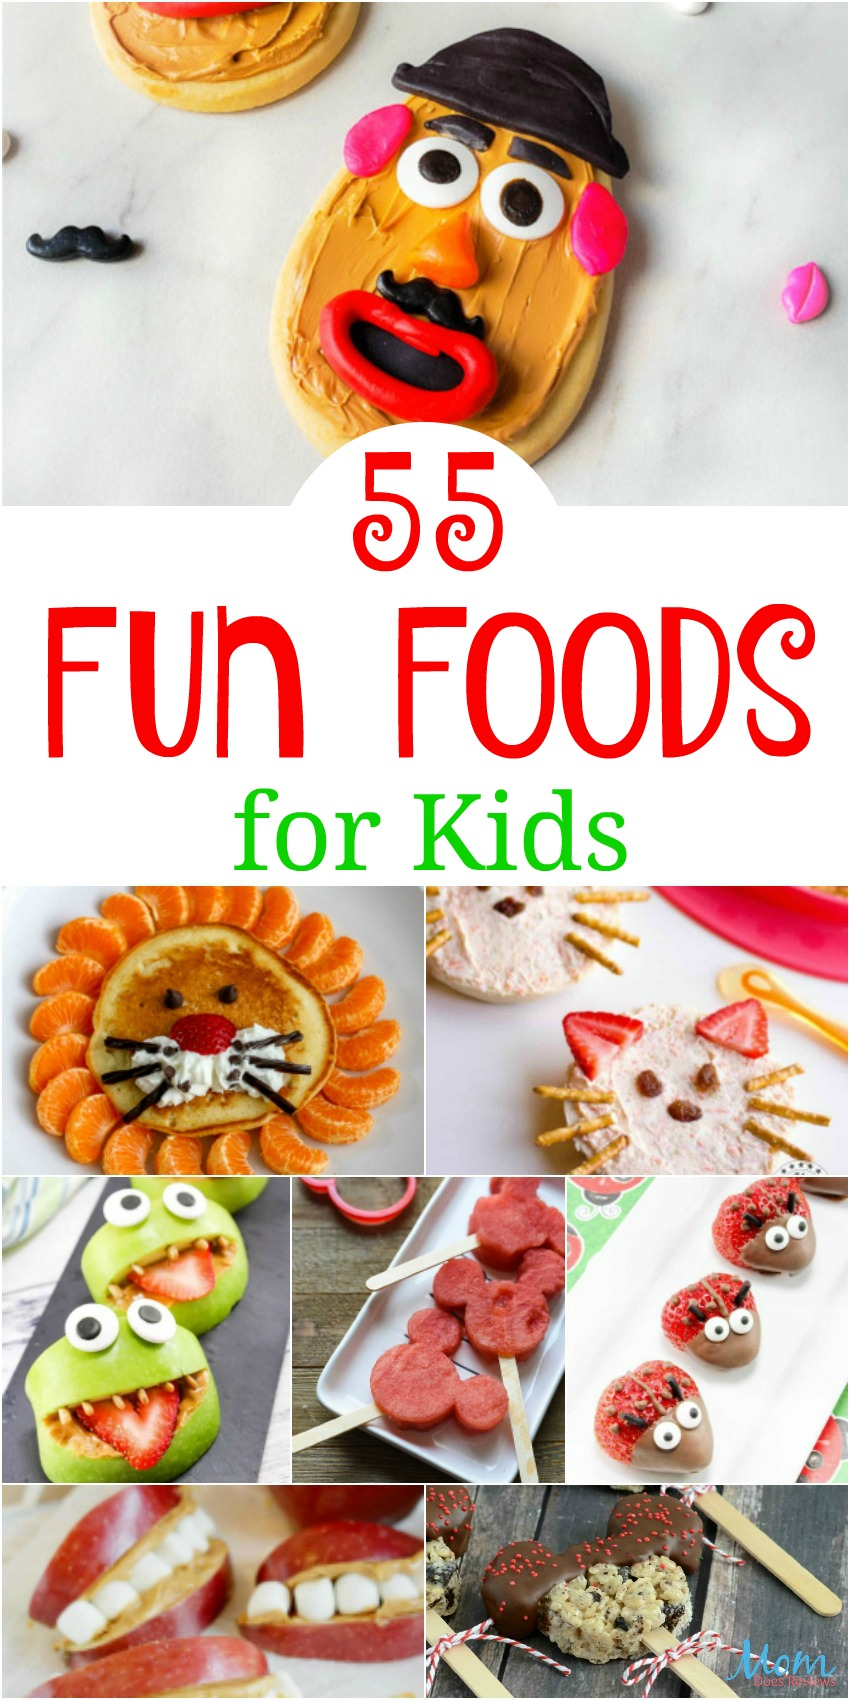 55 Fun Foods for Kids Guaranteed to Bring a Smile #recipes #funfood #foodie #funstuff #kidapproved